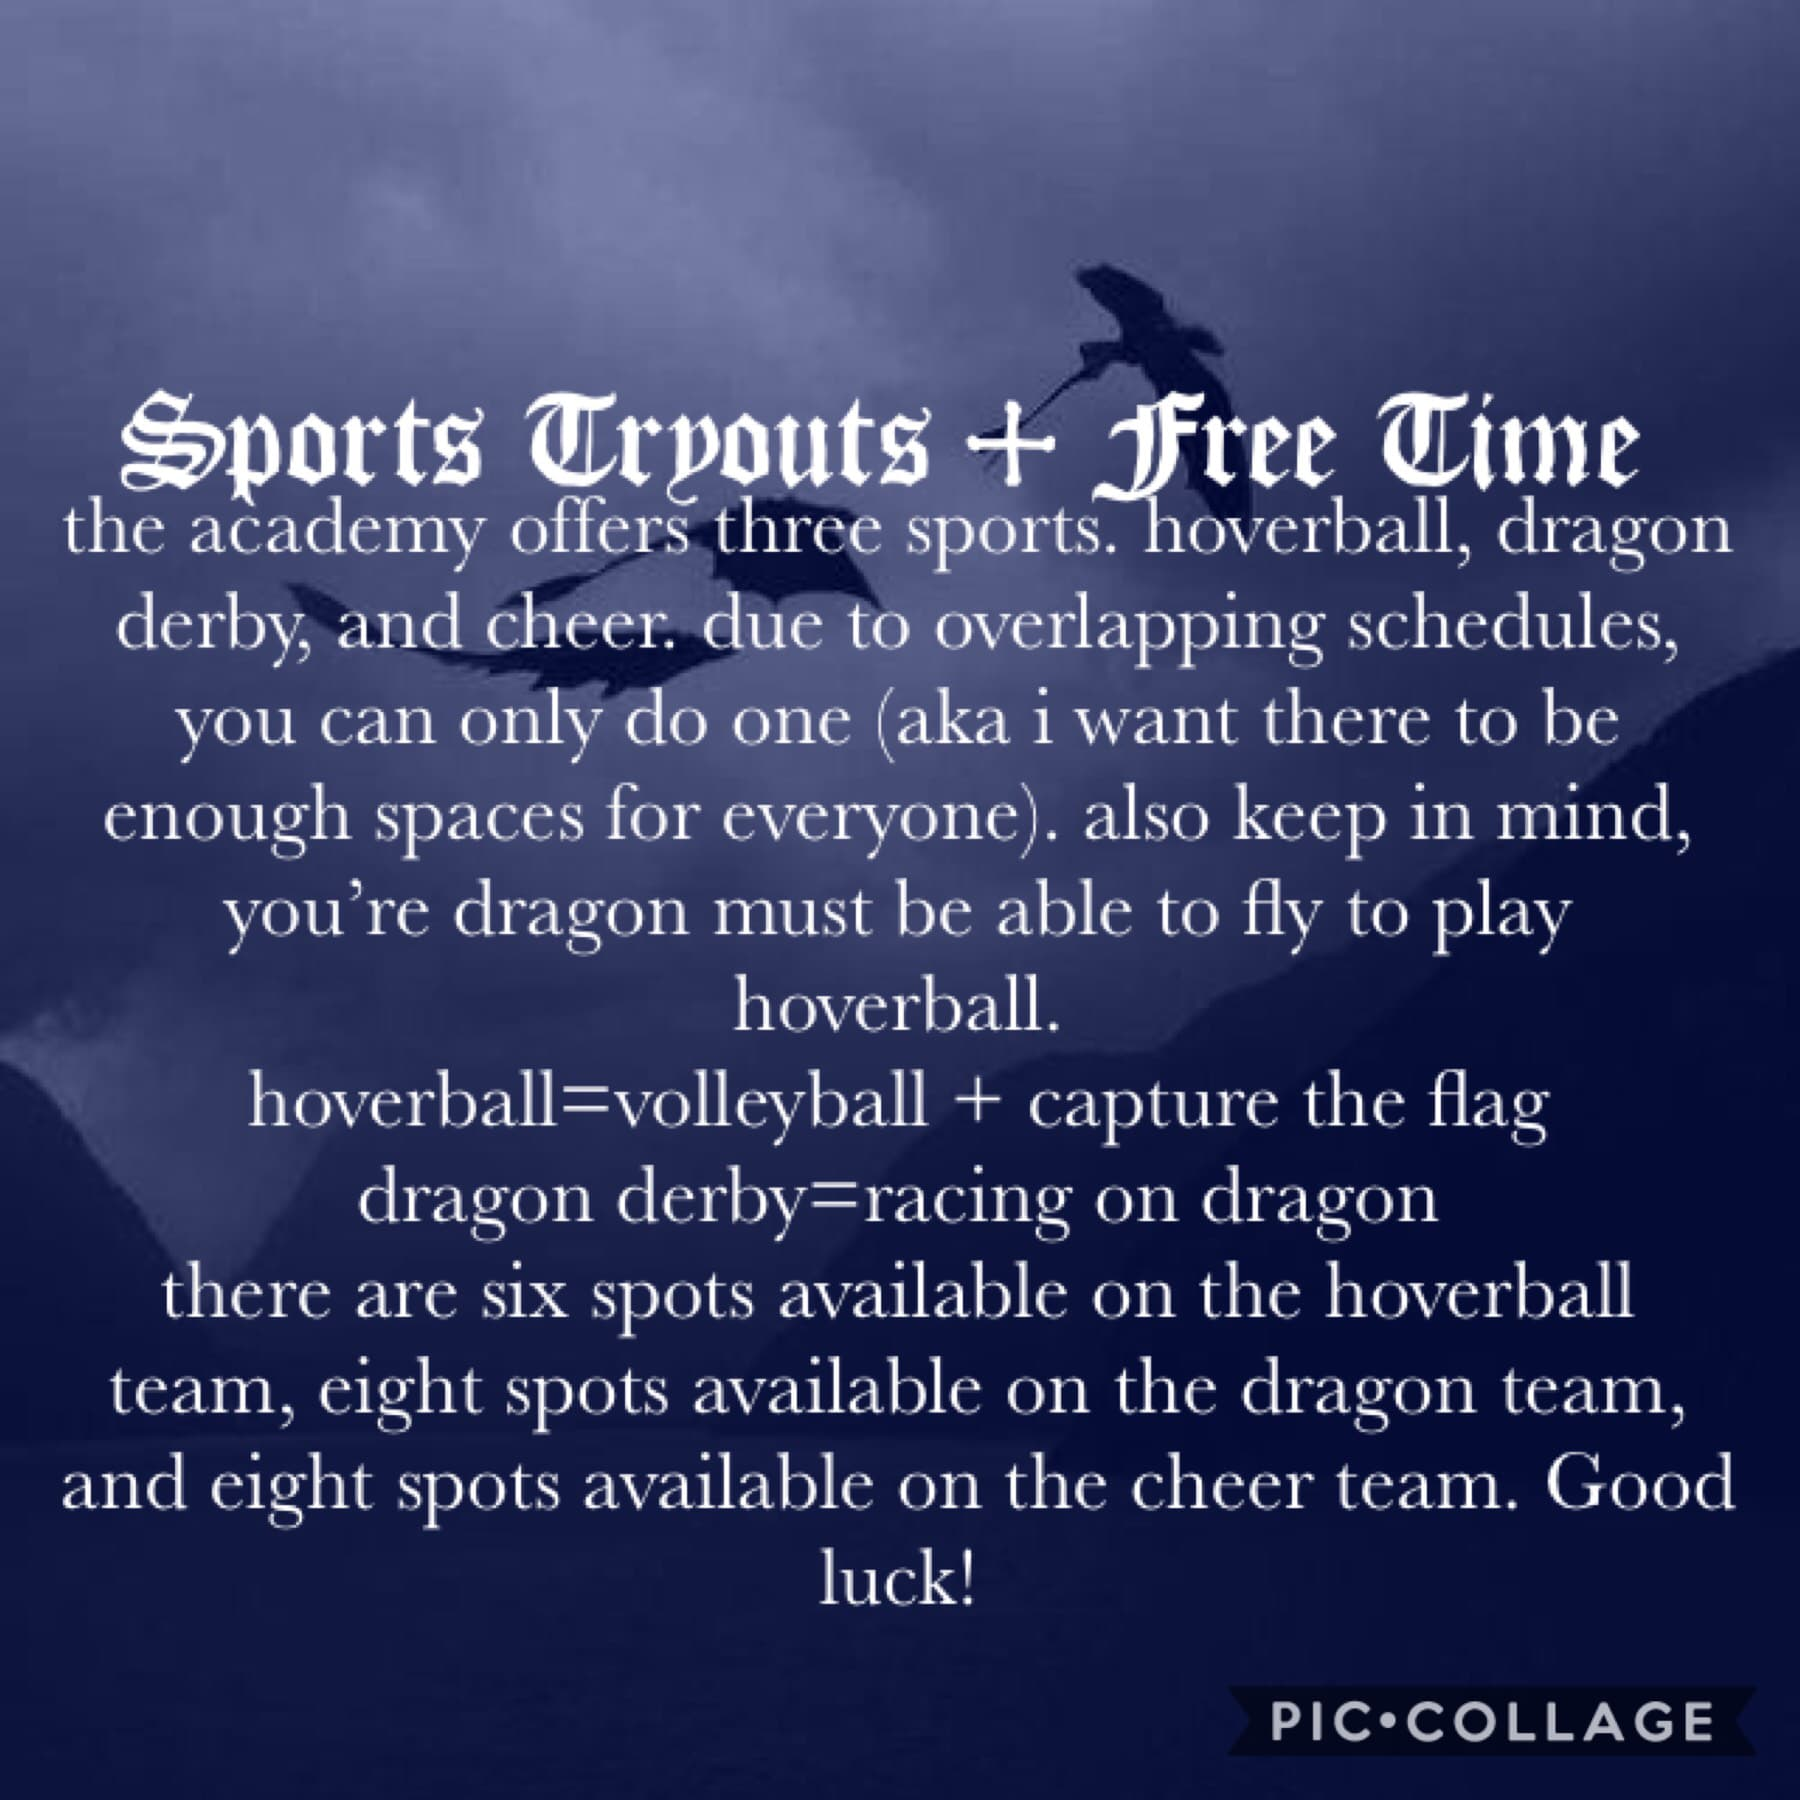 🖤Sports Tryouts + Free Time🖤